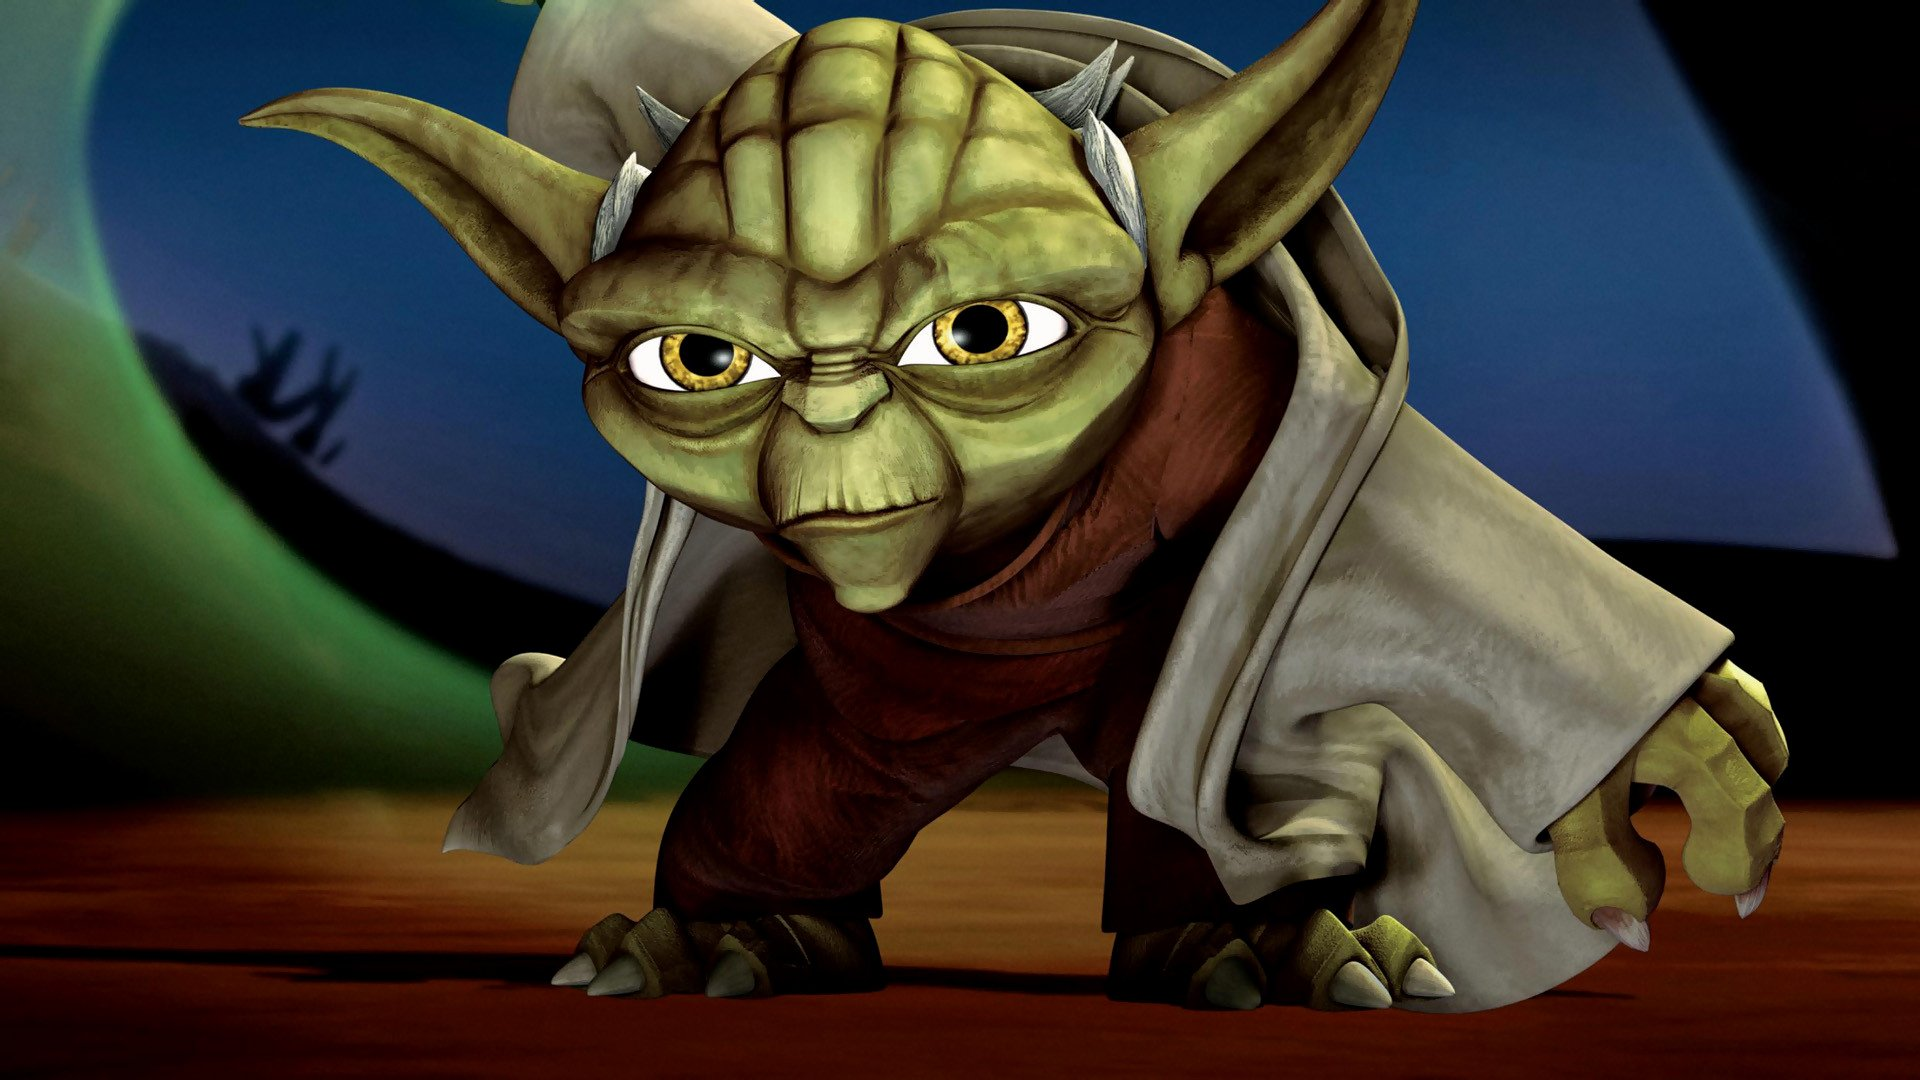 Movie - Star Wars: The Clone Wars  Yoda Wallpaper